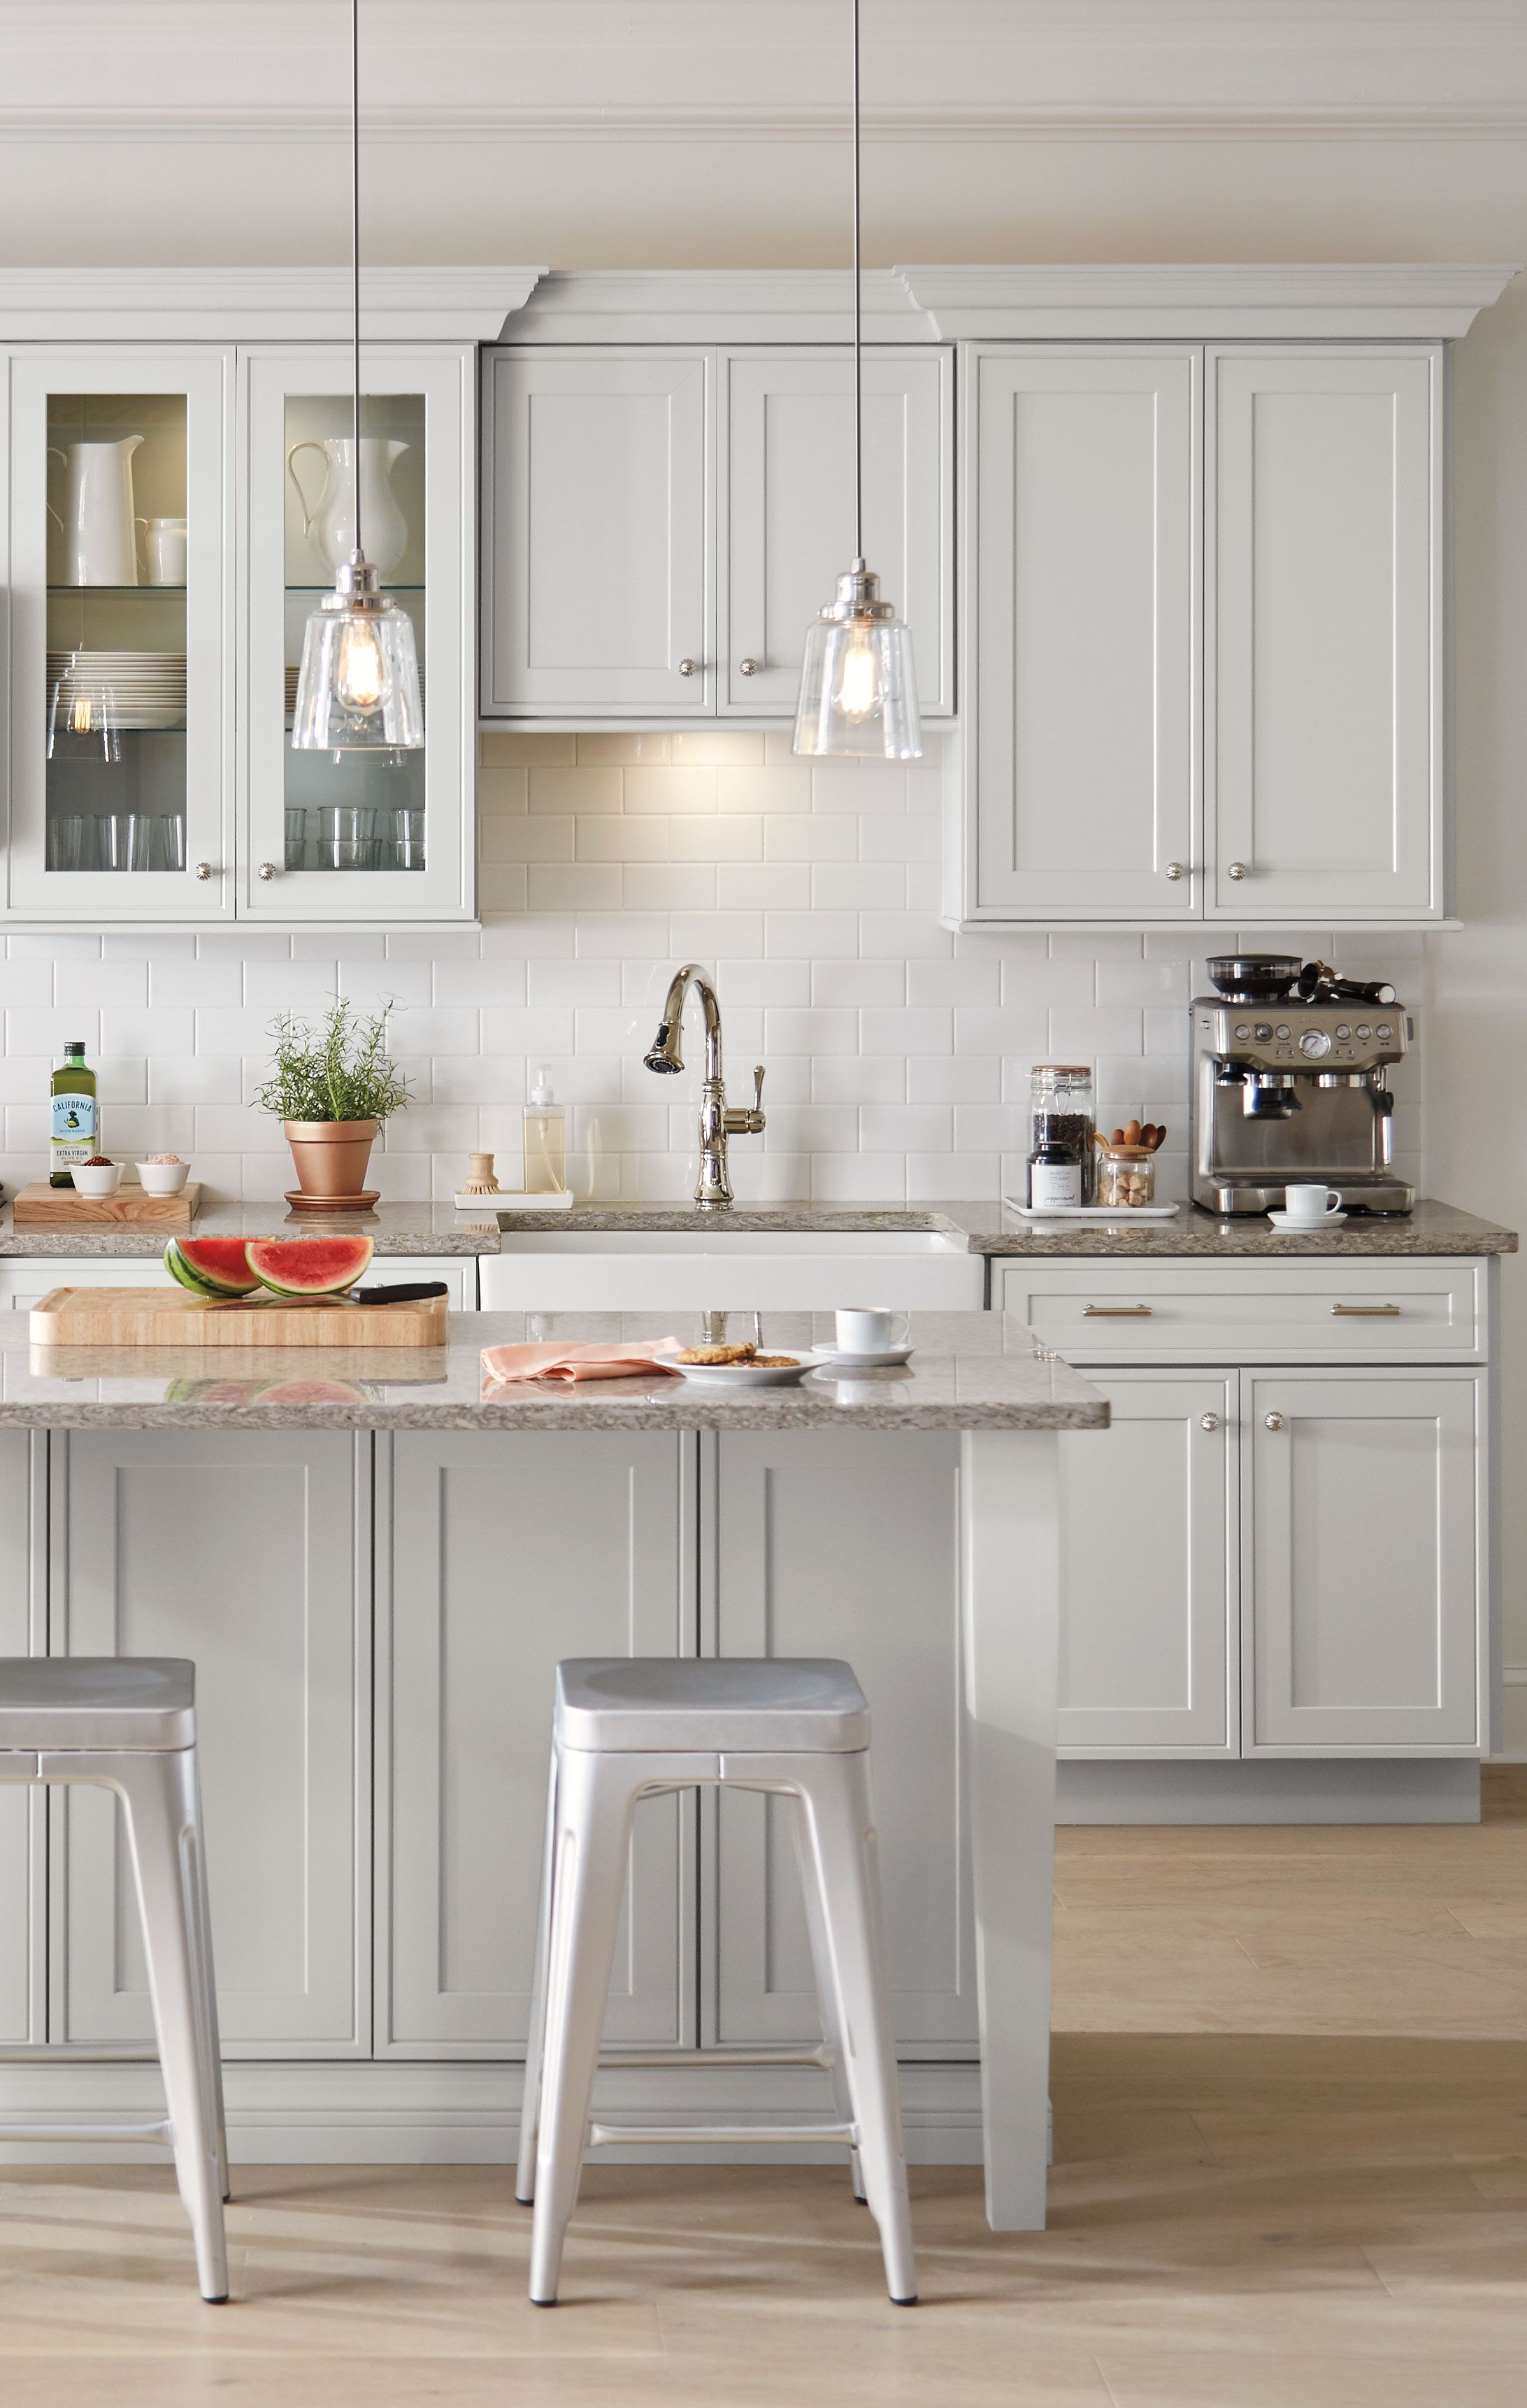 The Home Depot Kitchen Cabinets Living Kitchens At The Home Depot Home Decor And Beautiful